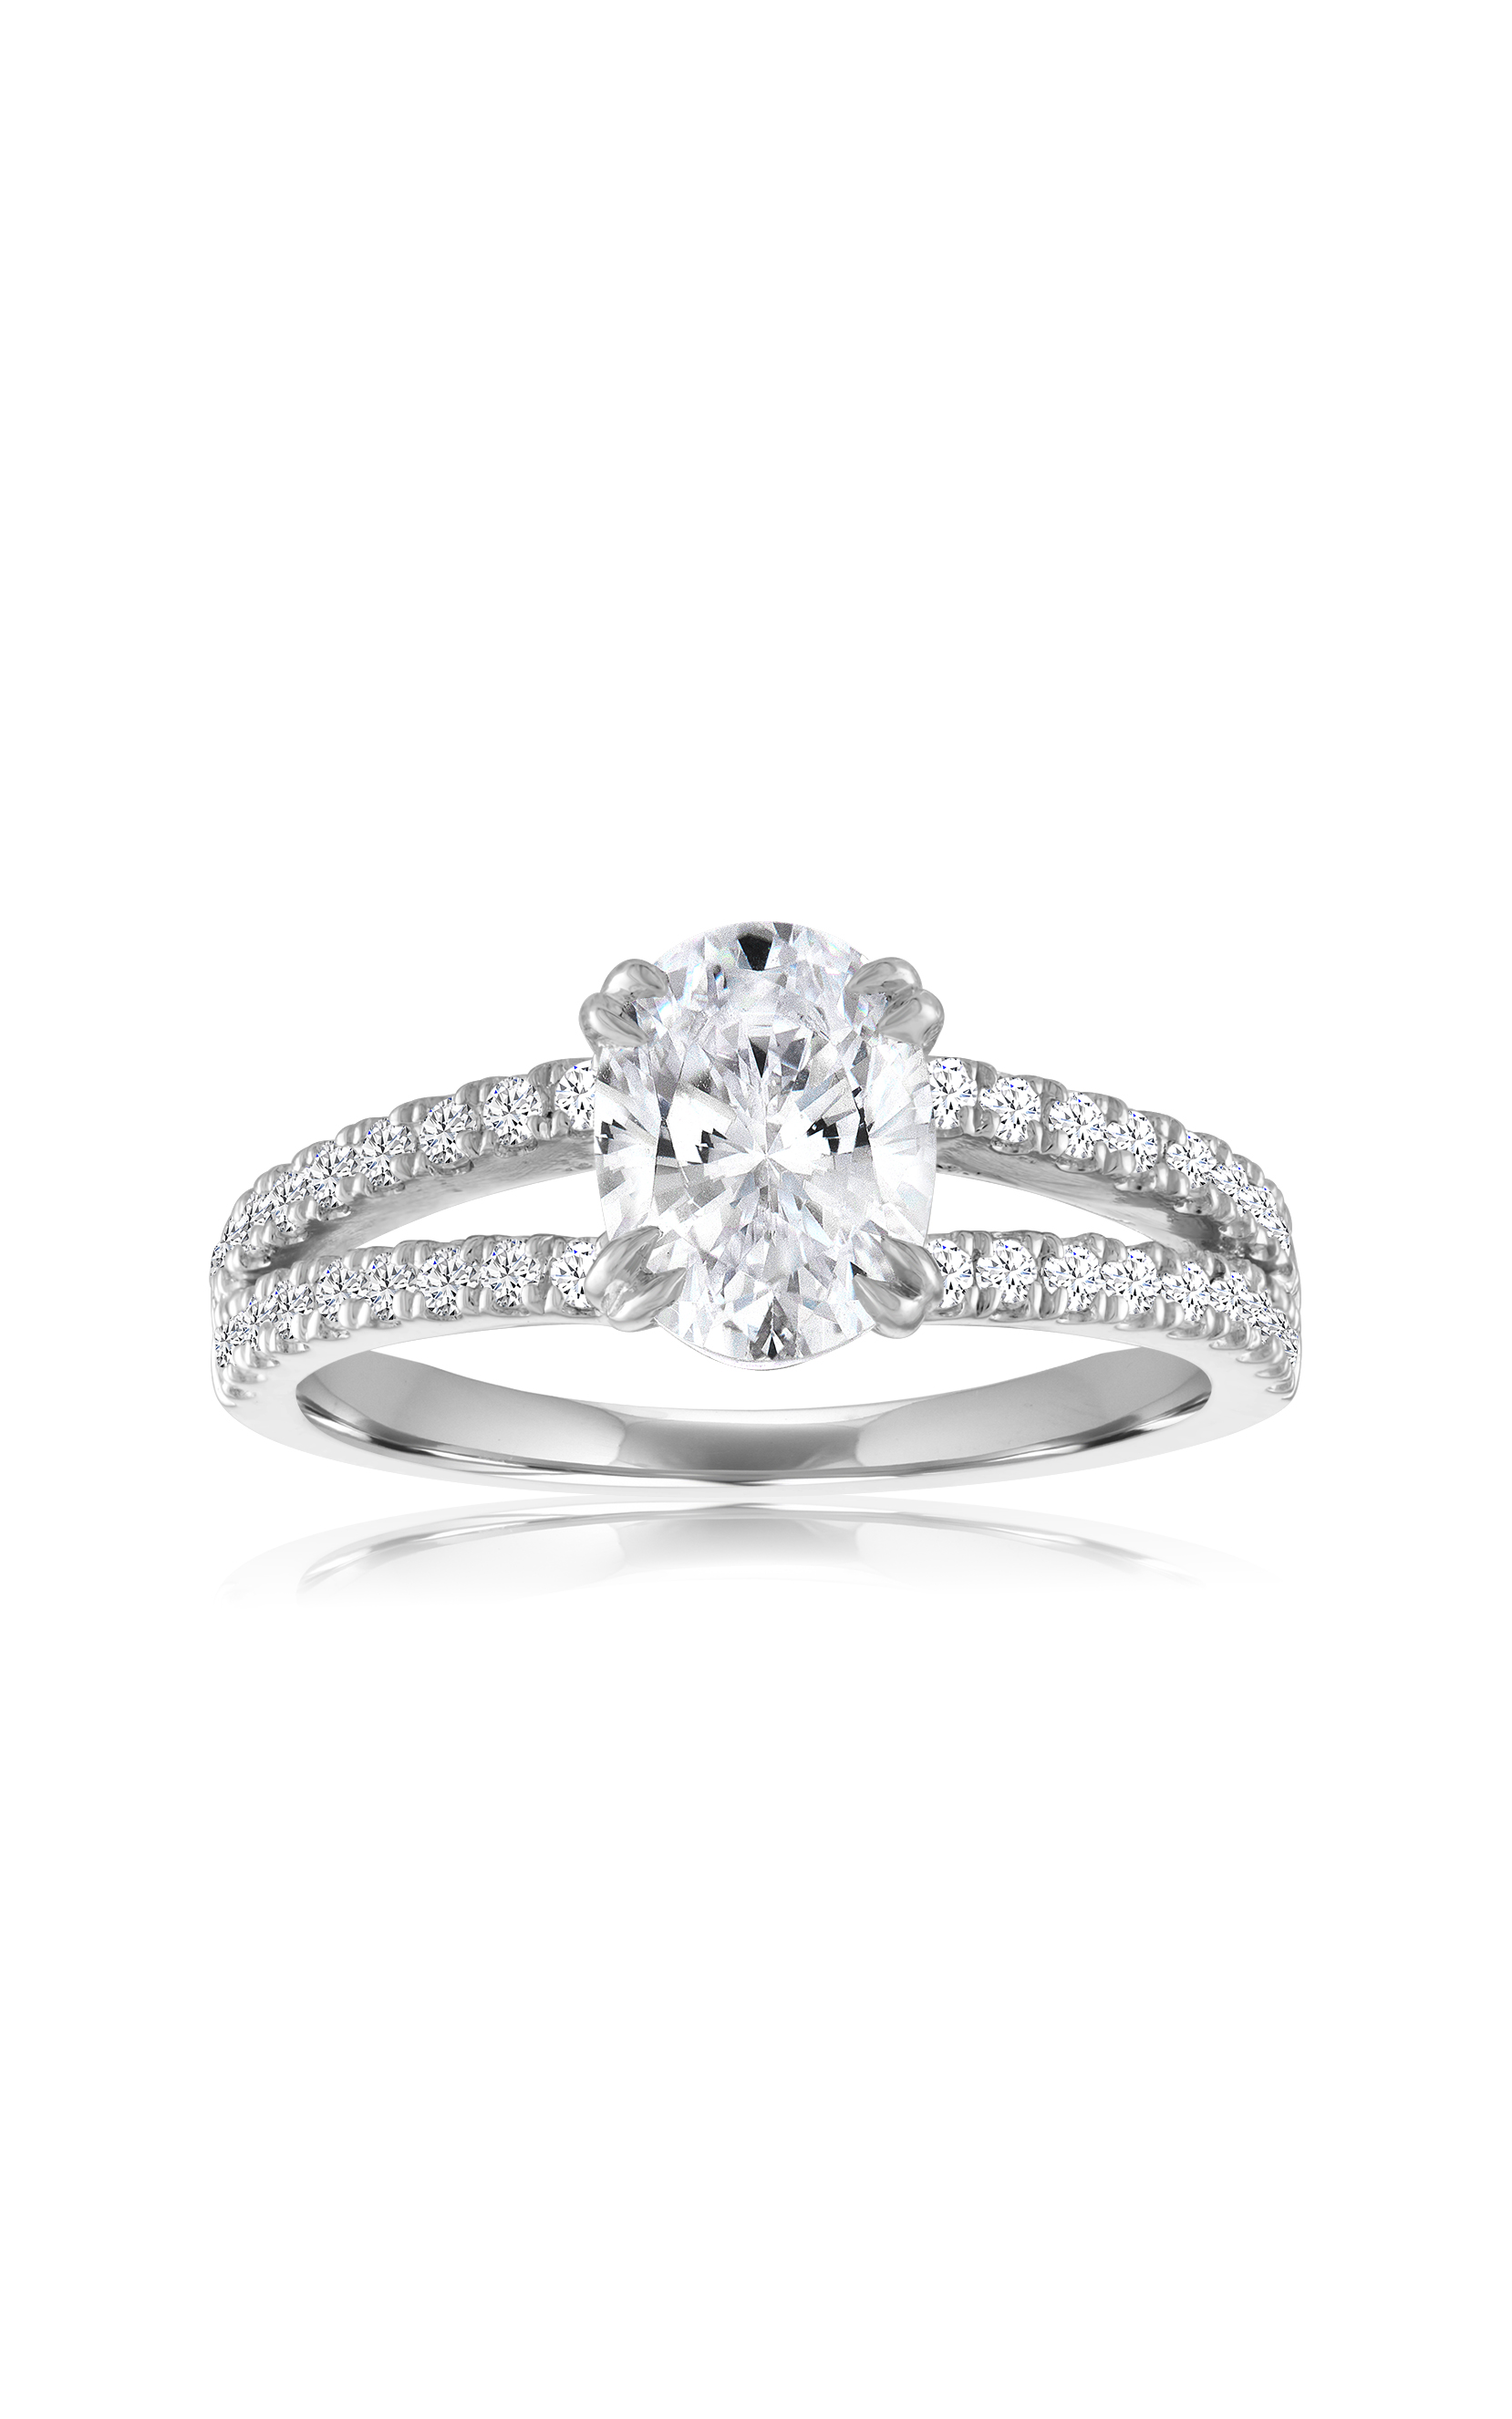 Loading Zoom: Were Find Wedding Rings At Websimilar.org